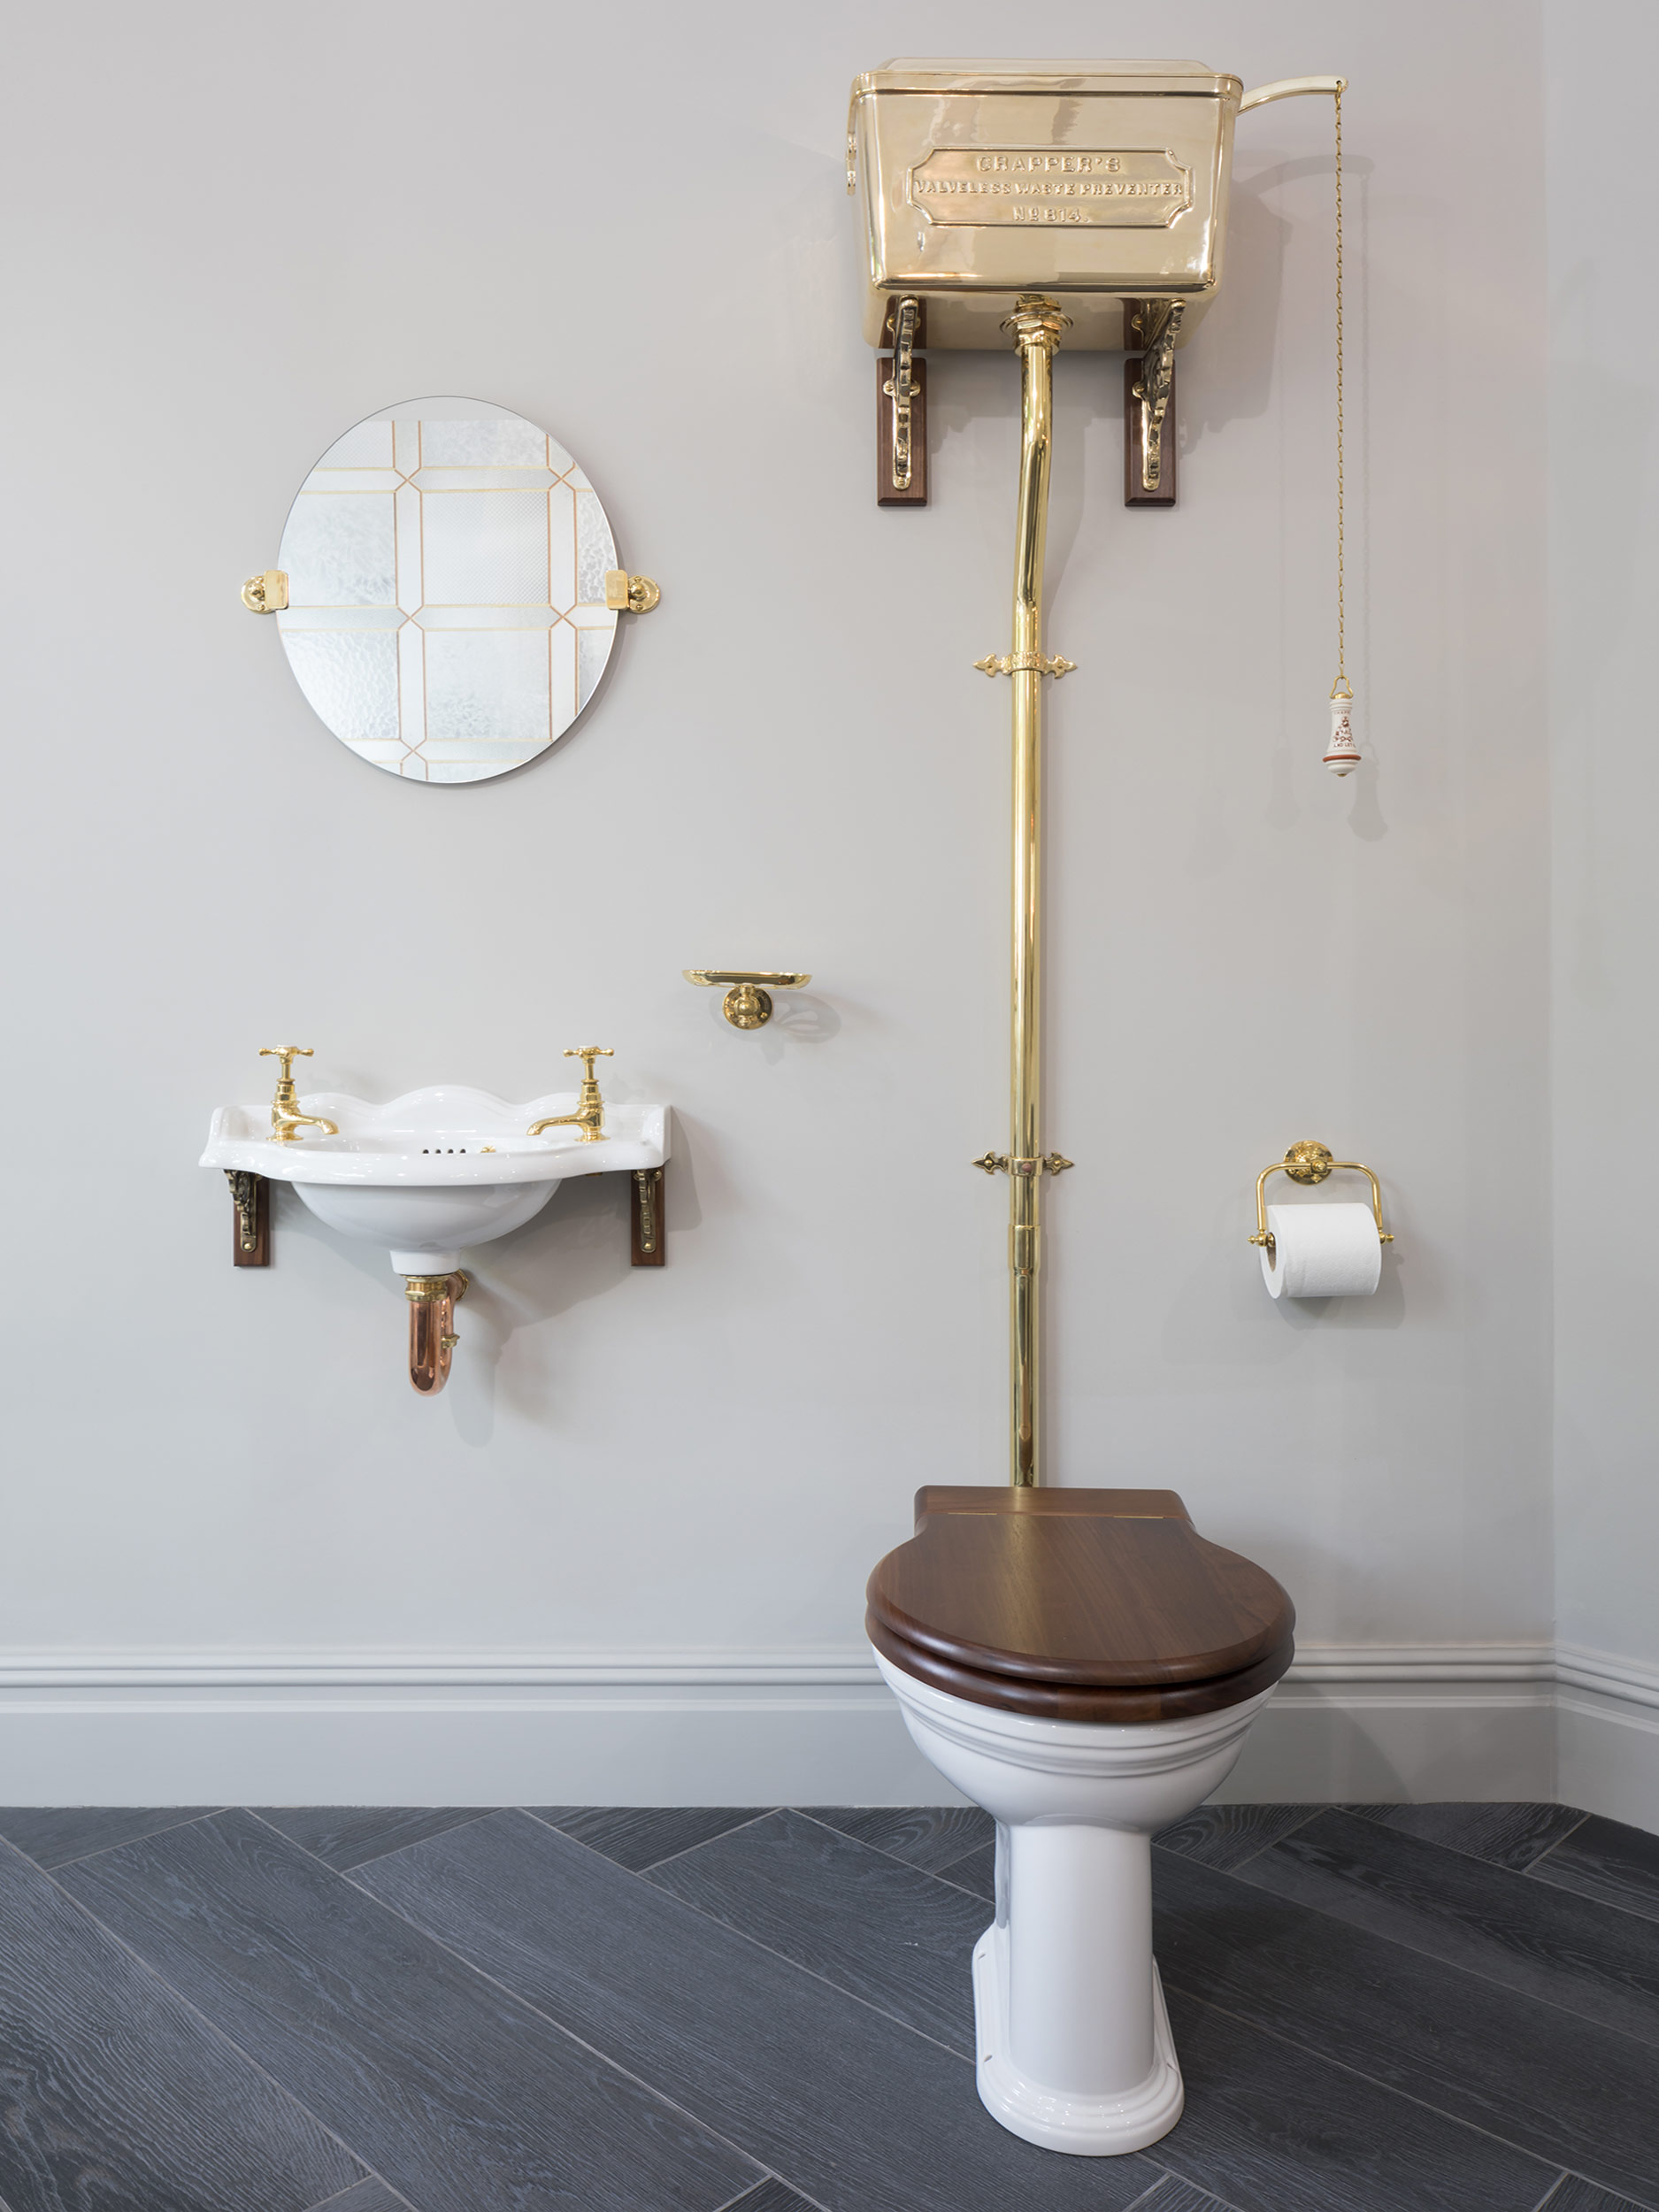 West One Bathrooms Knightsbridge Showroom Thurloe Place 3a